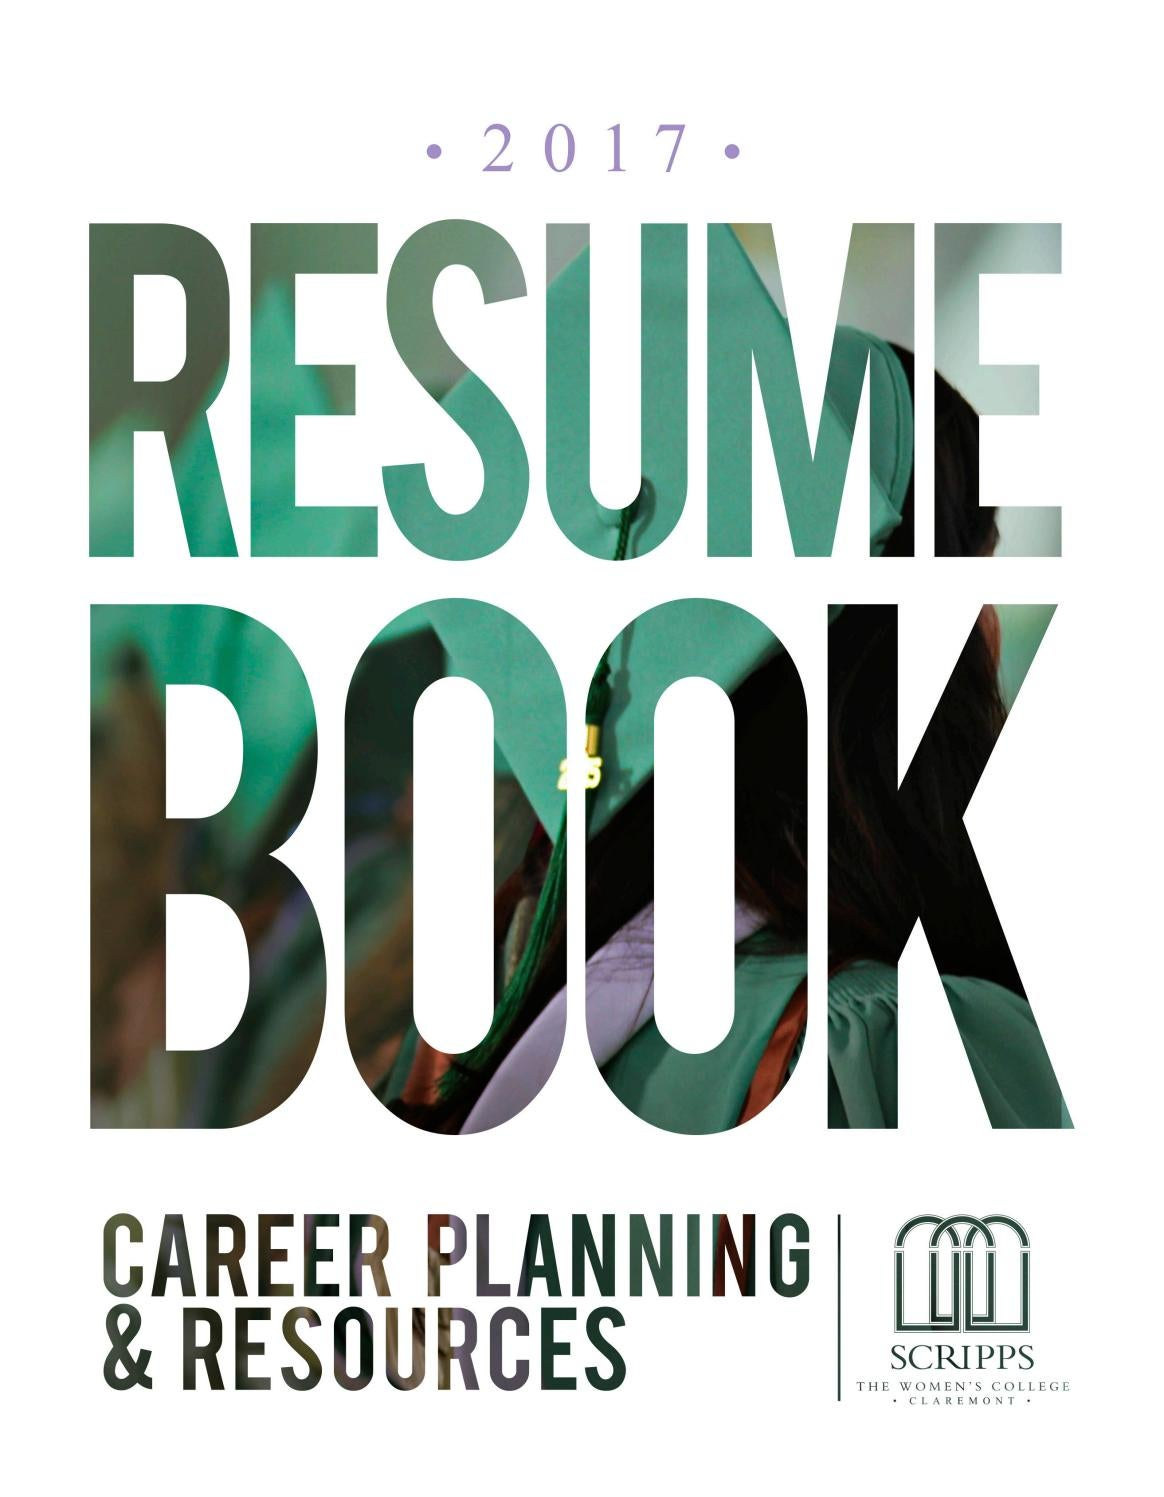 2017 resume book by career planning resources at scripps college 2017 resume book by career planning resources at scripps college issuu fandeluxe